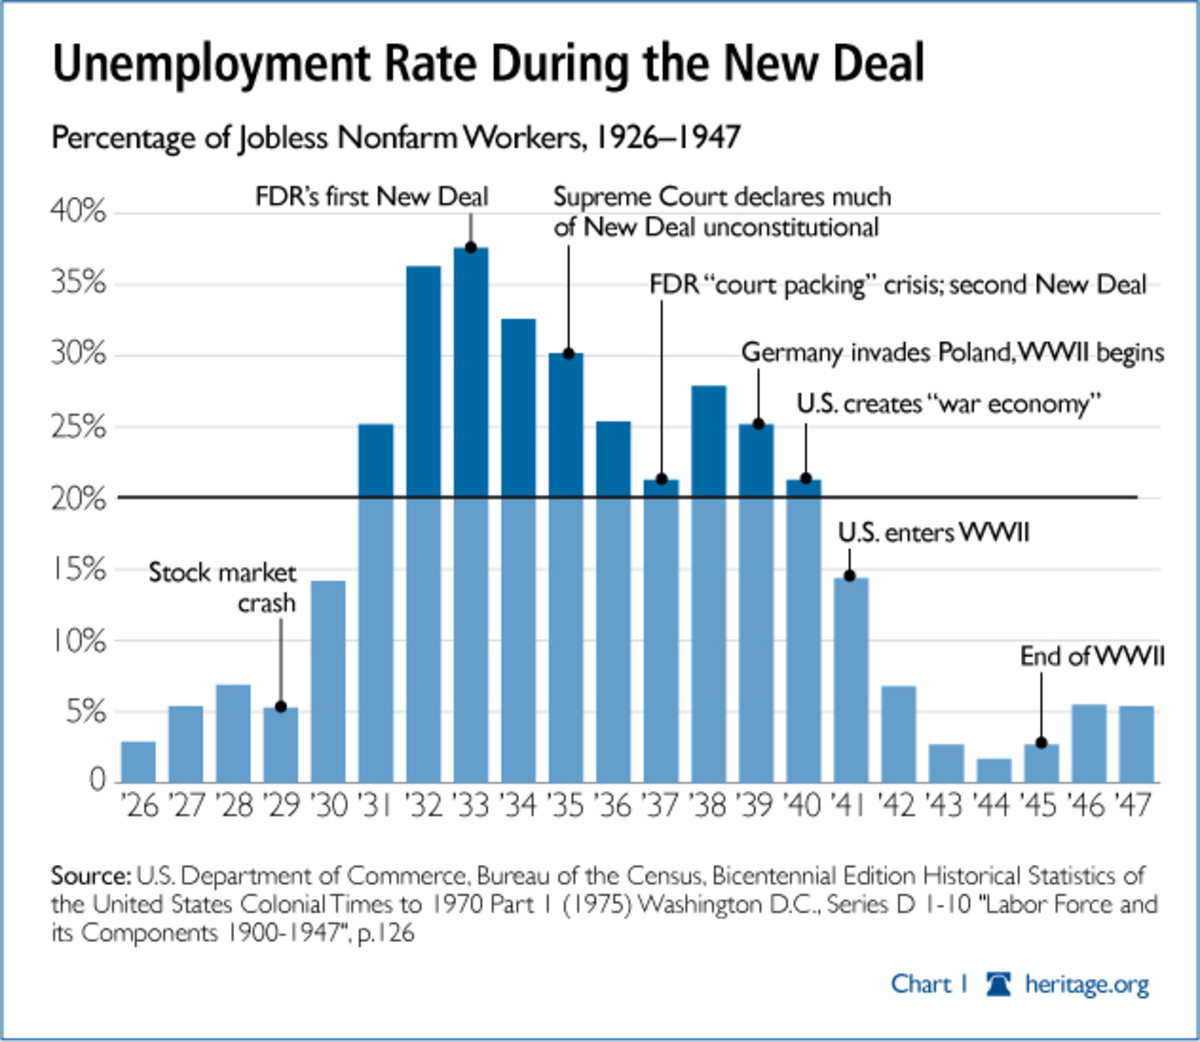 The New Deal's unconstitutional interventions extended the Great Depression by more than a decade.